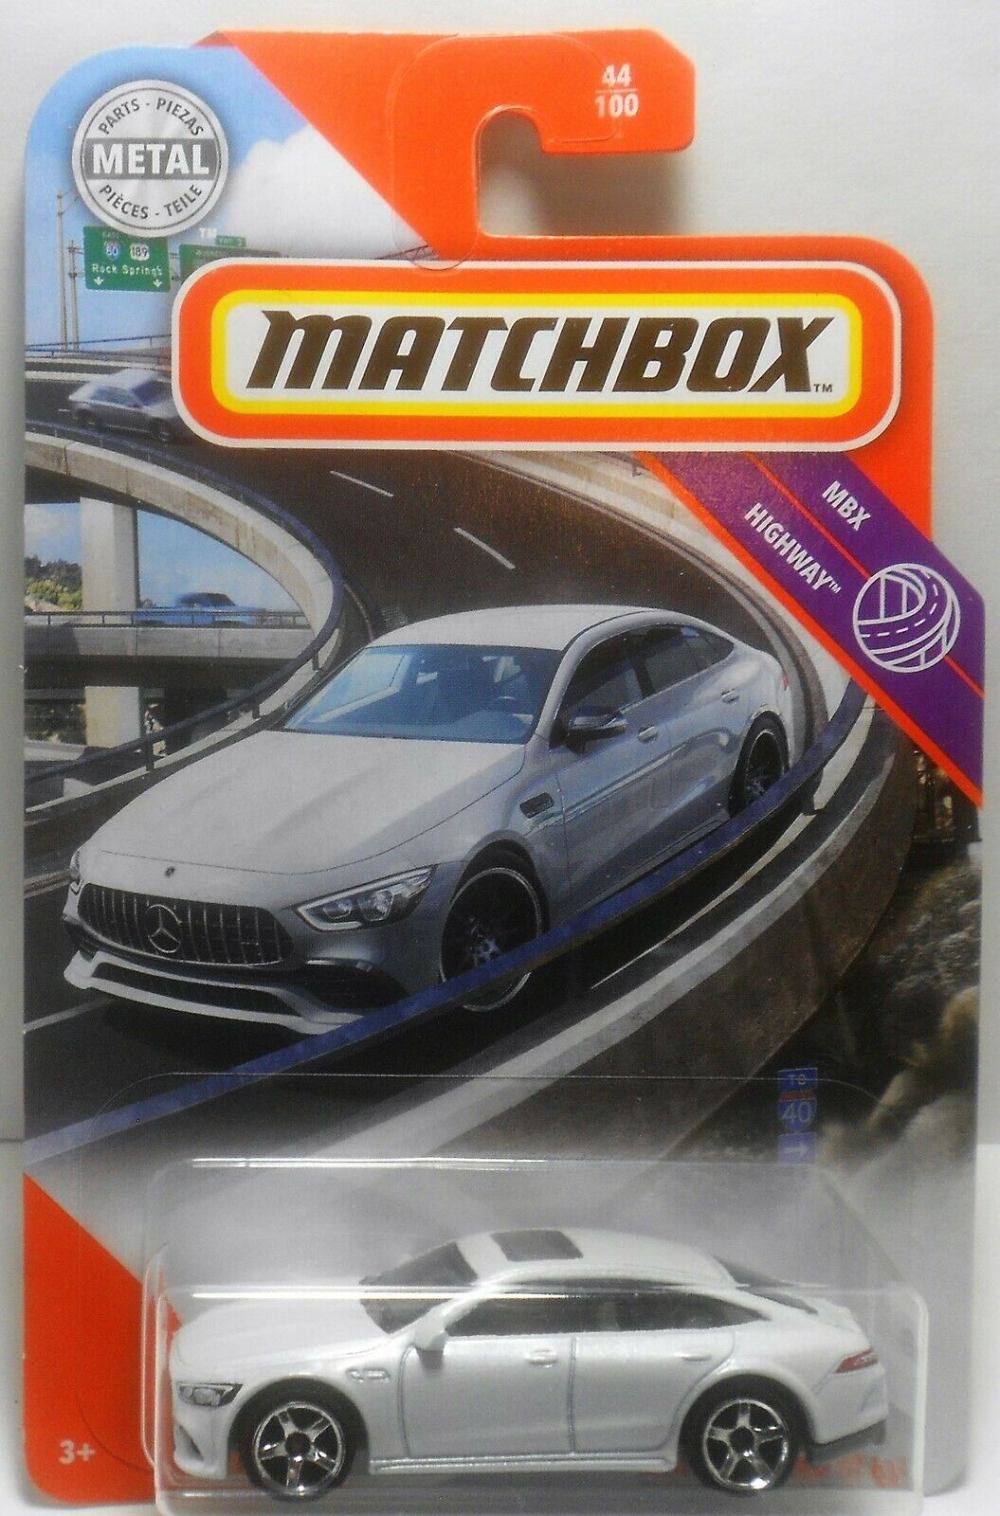 MBX Highway Mercedes-AMG GT 63 S 44 Matchbox 2020 neu in OVP